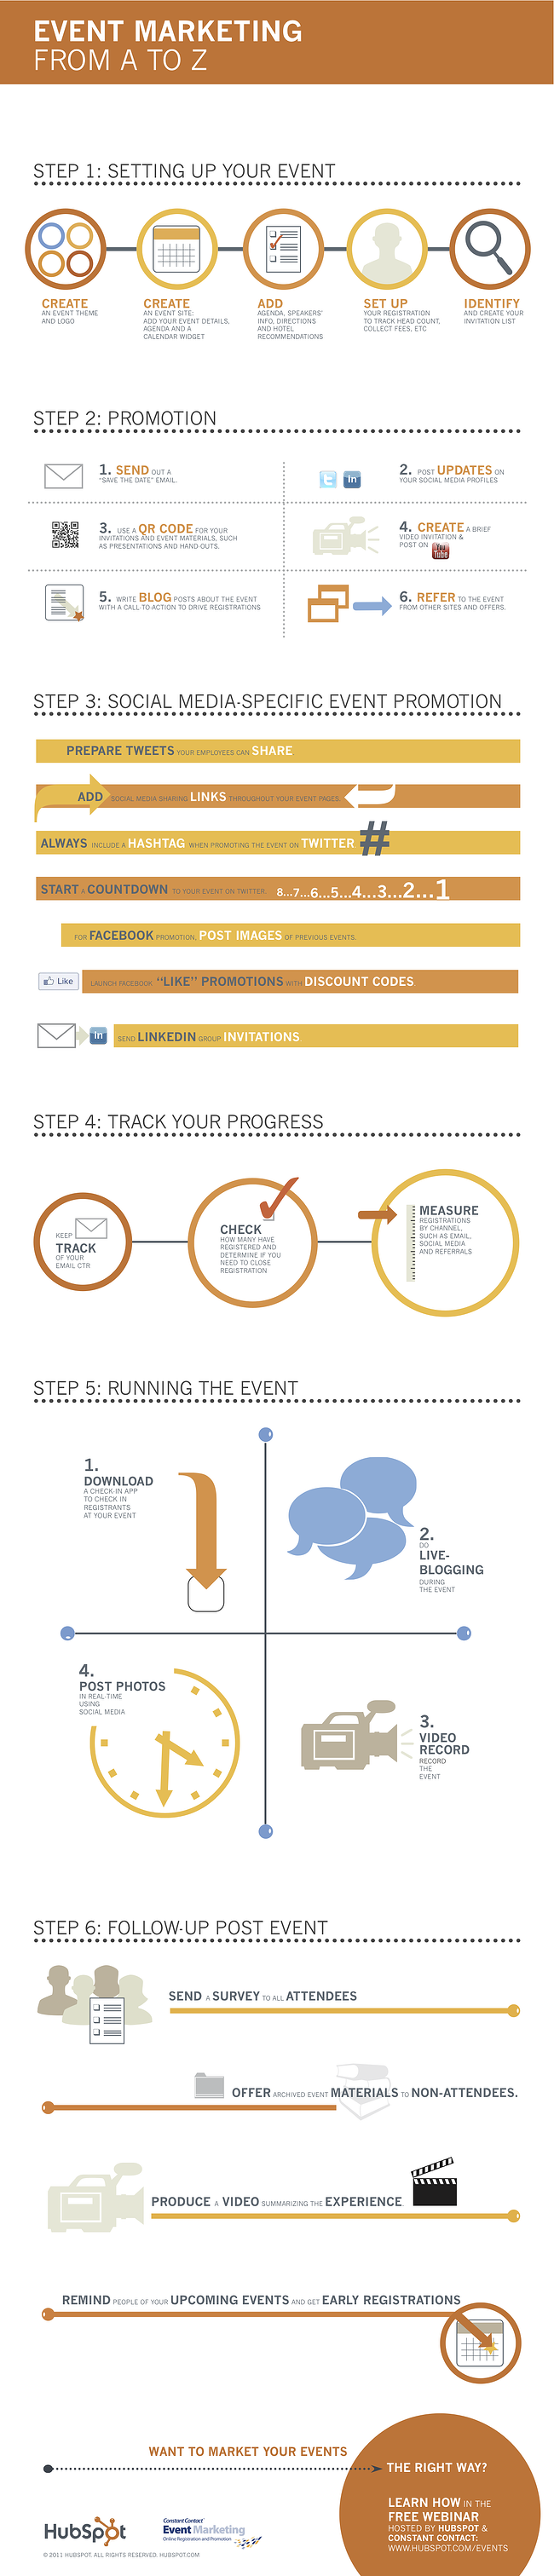 Event Marketing Infographic